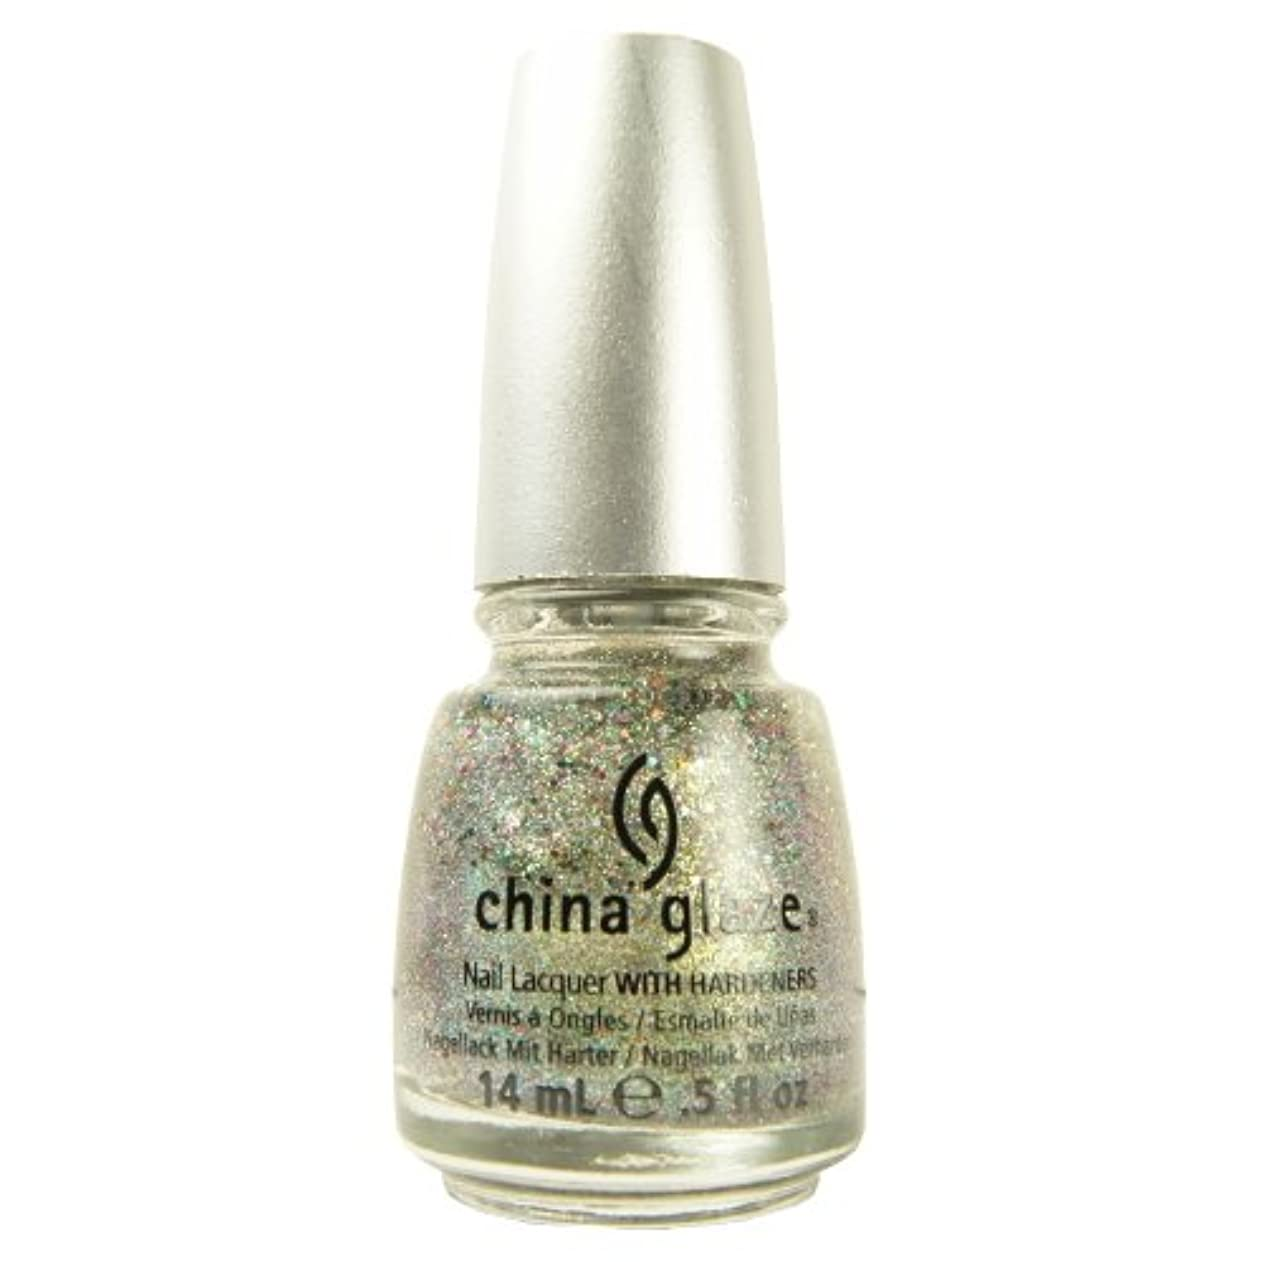 添加剤アボート他の日(6 Pack) CHINA GLAZE Glitter Nail Lacquer with Nail Hardner - Ray-Diant (DC) (並行輸入品)